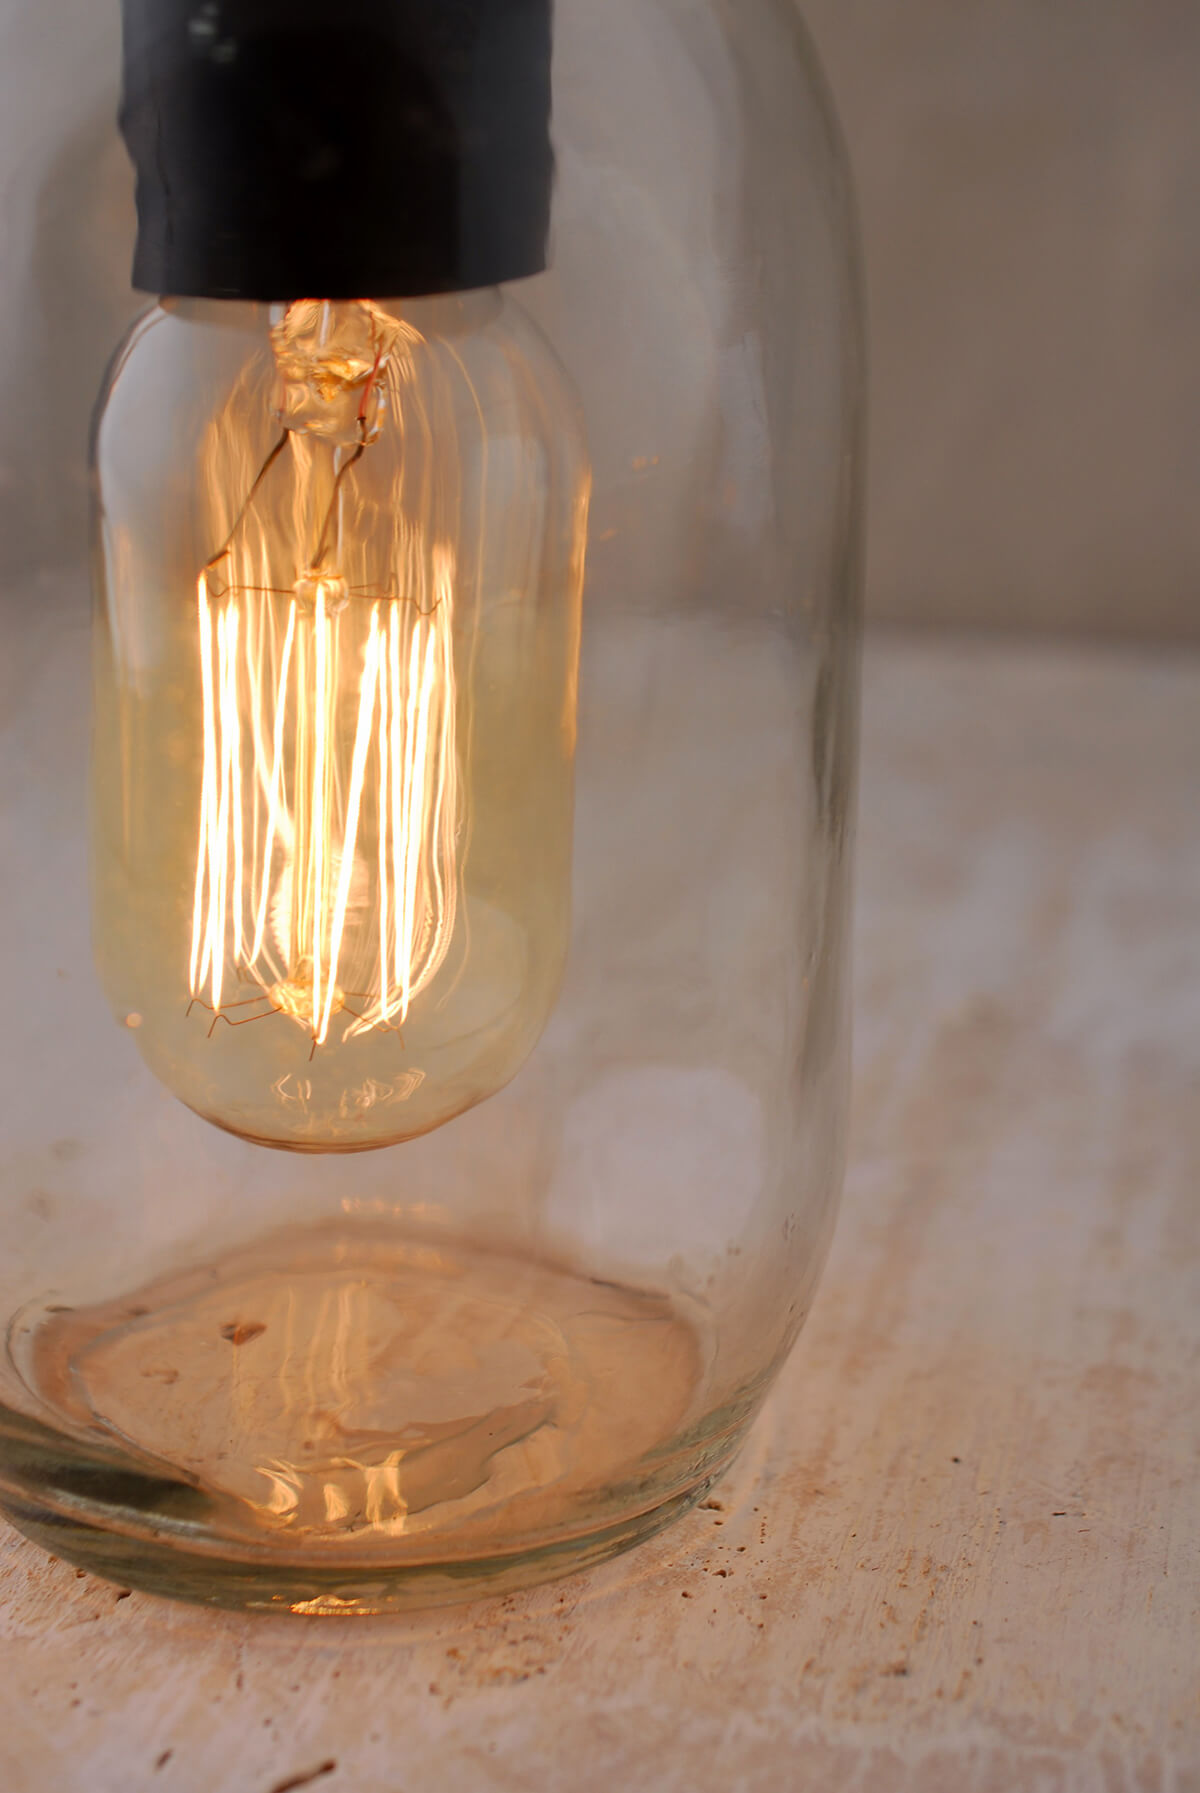 Gerson 65 Inch Electric Lighted Clear Mason Jar with Antique Light Bulb